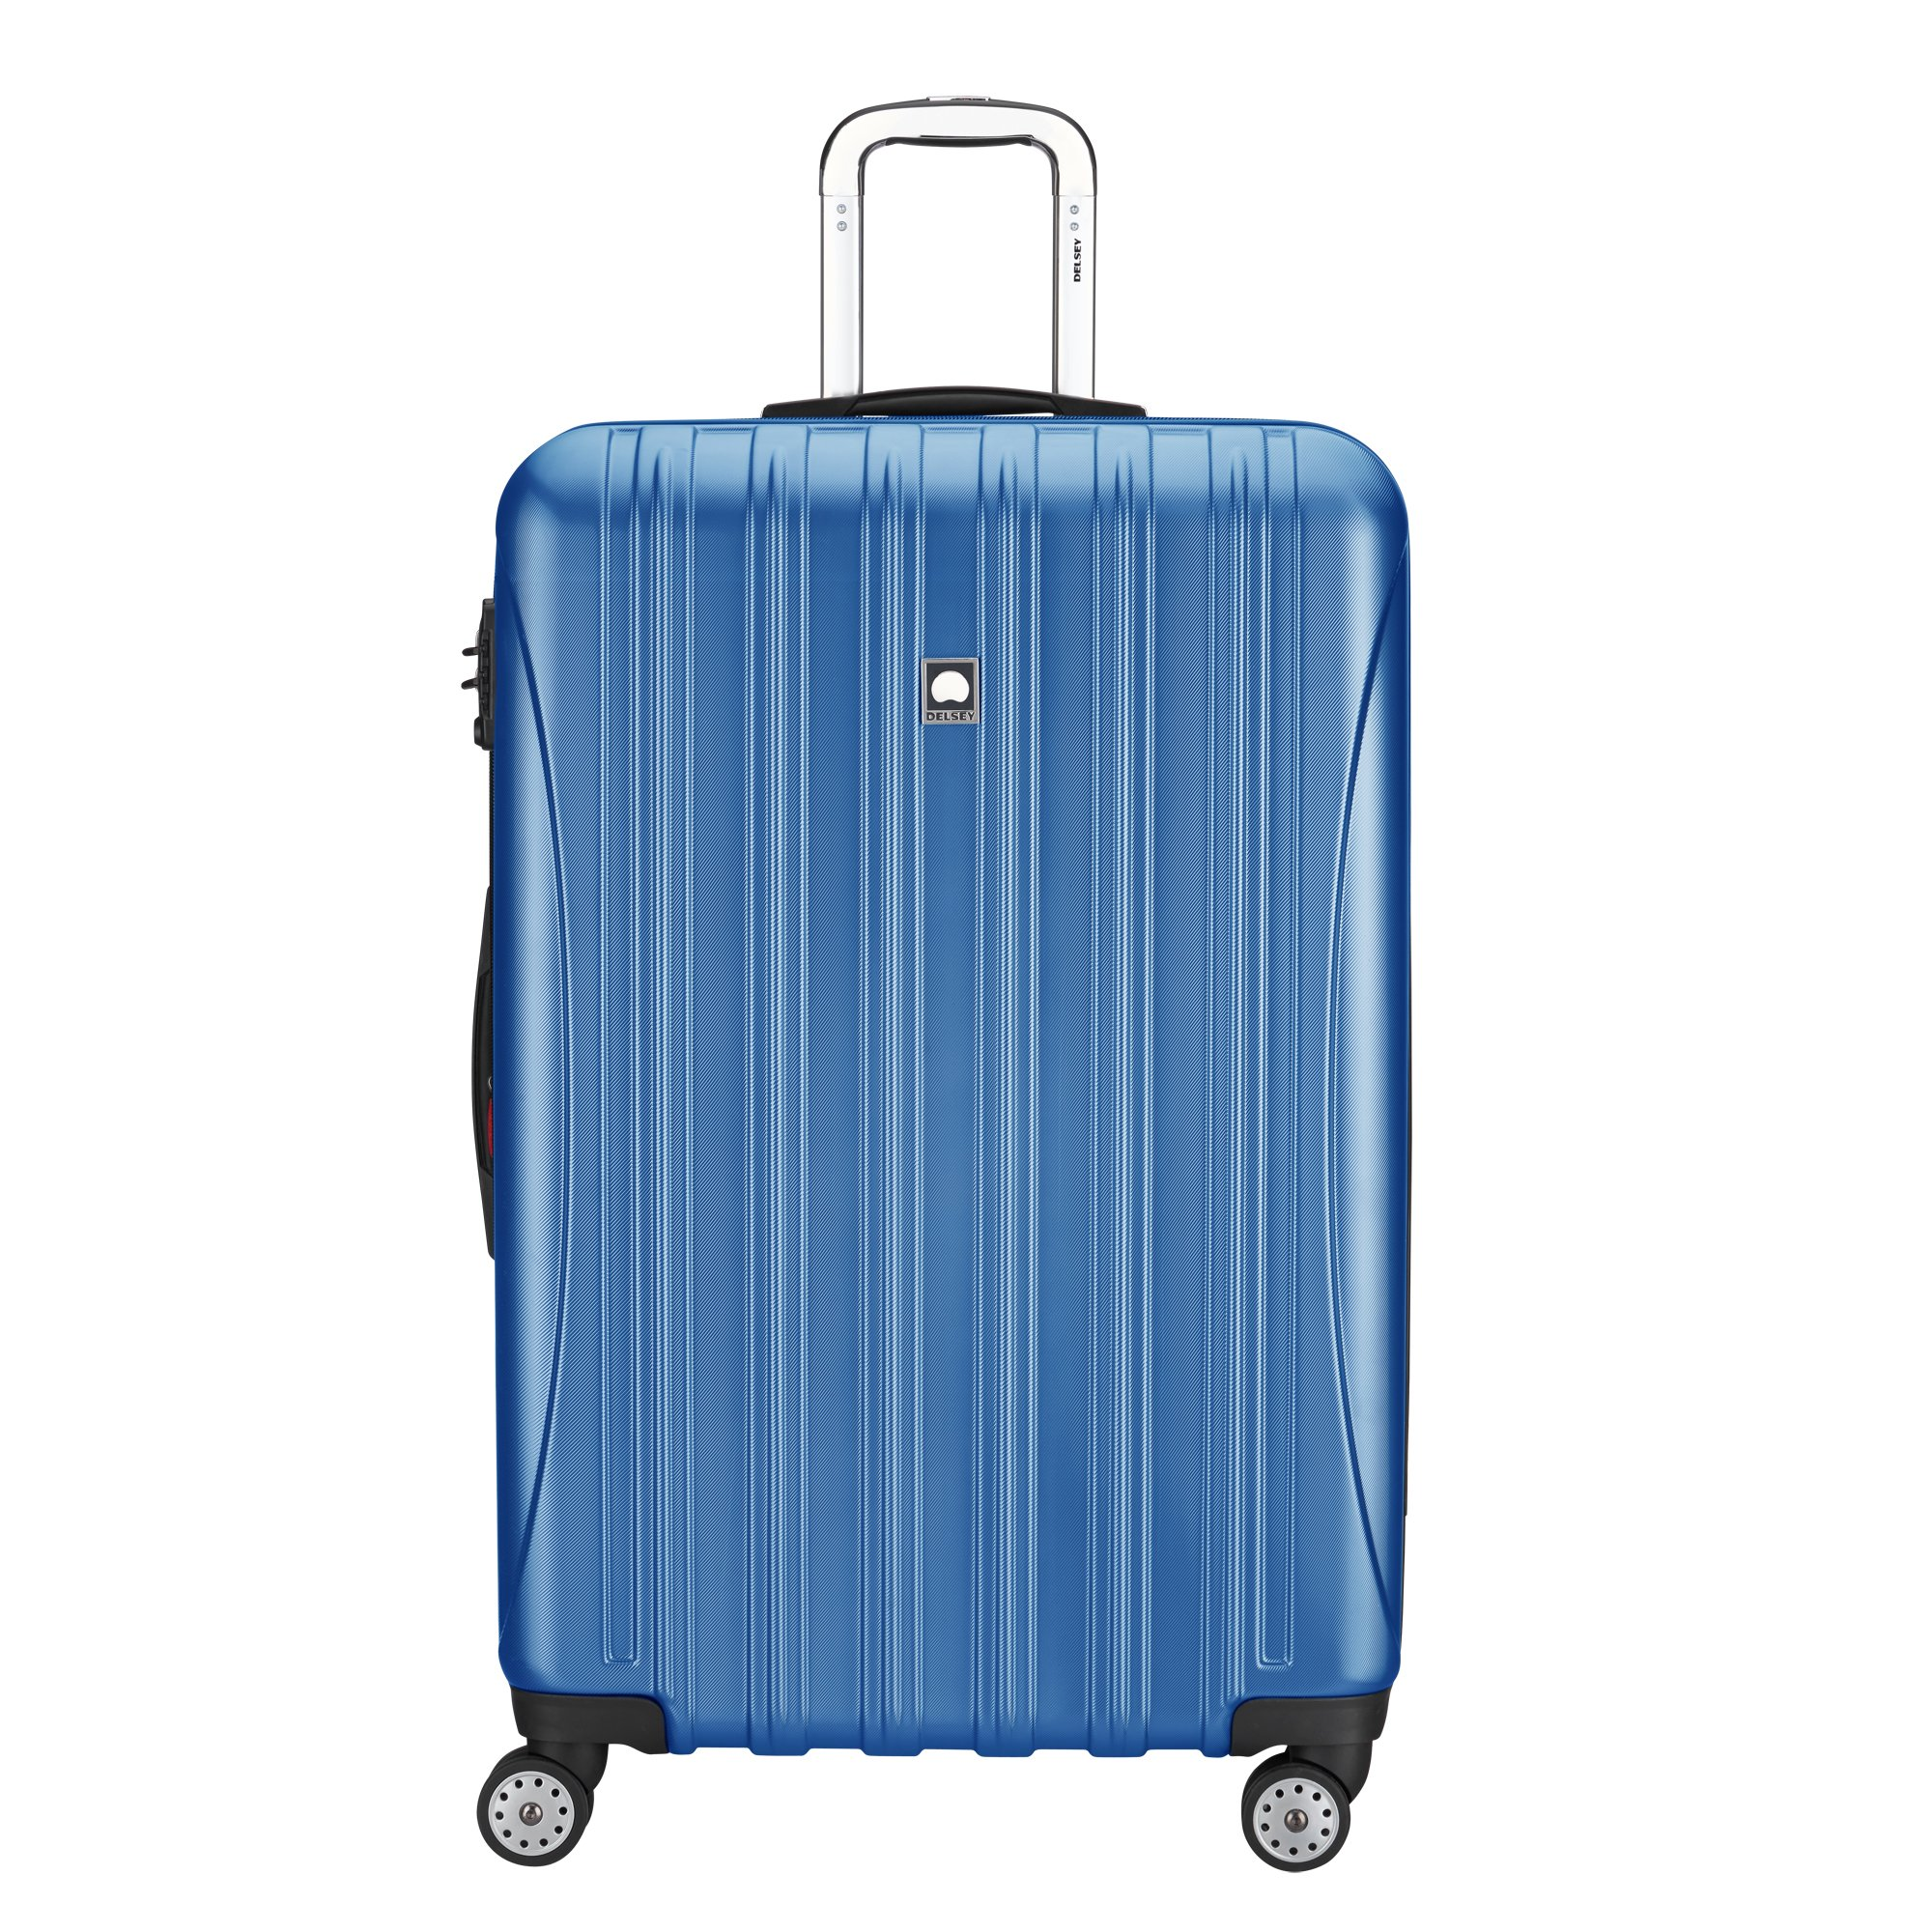 DELSEY Paris Luggage Checked-Large (>28''), Blue Textured